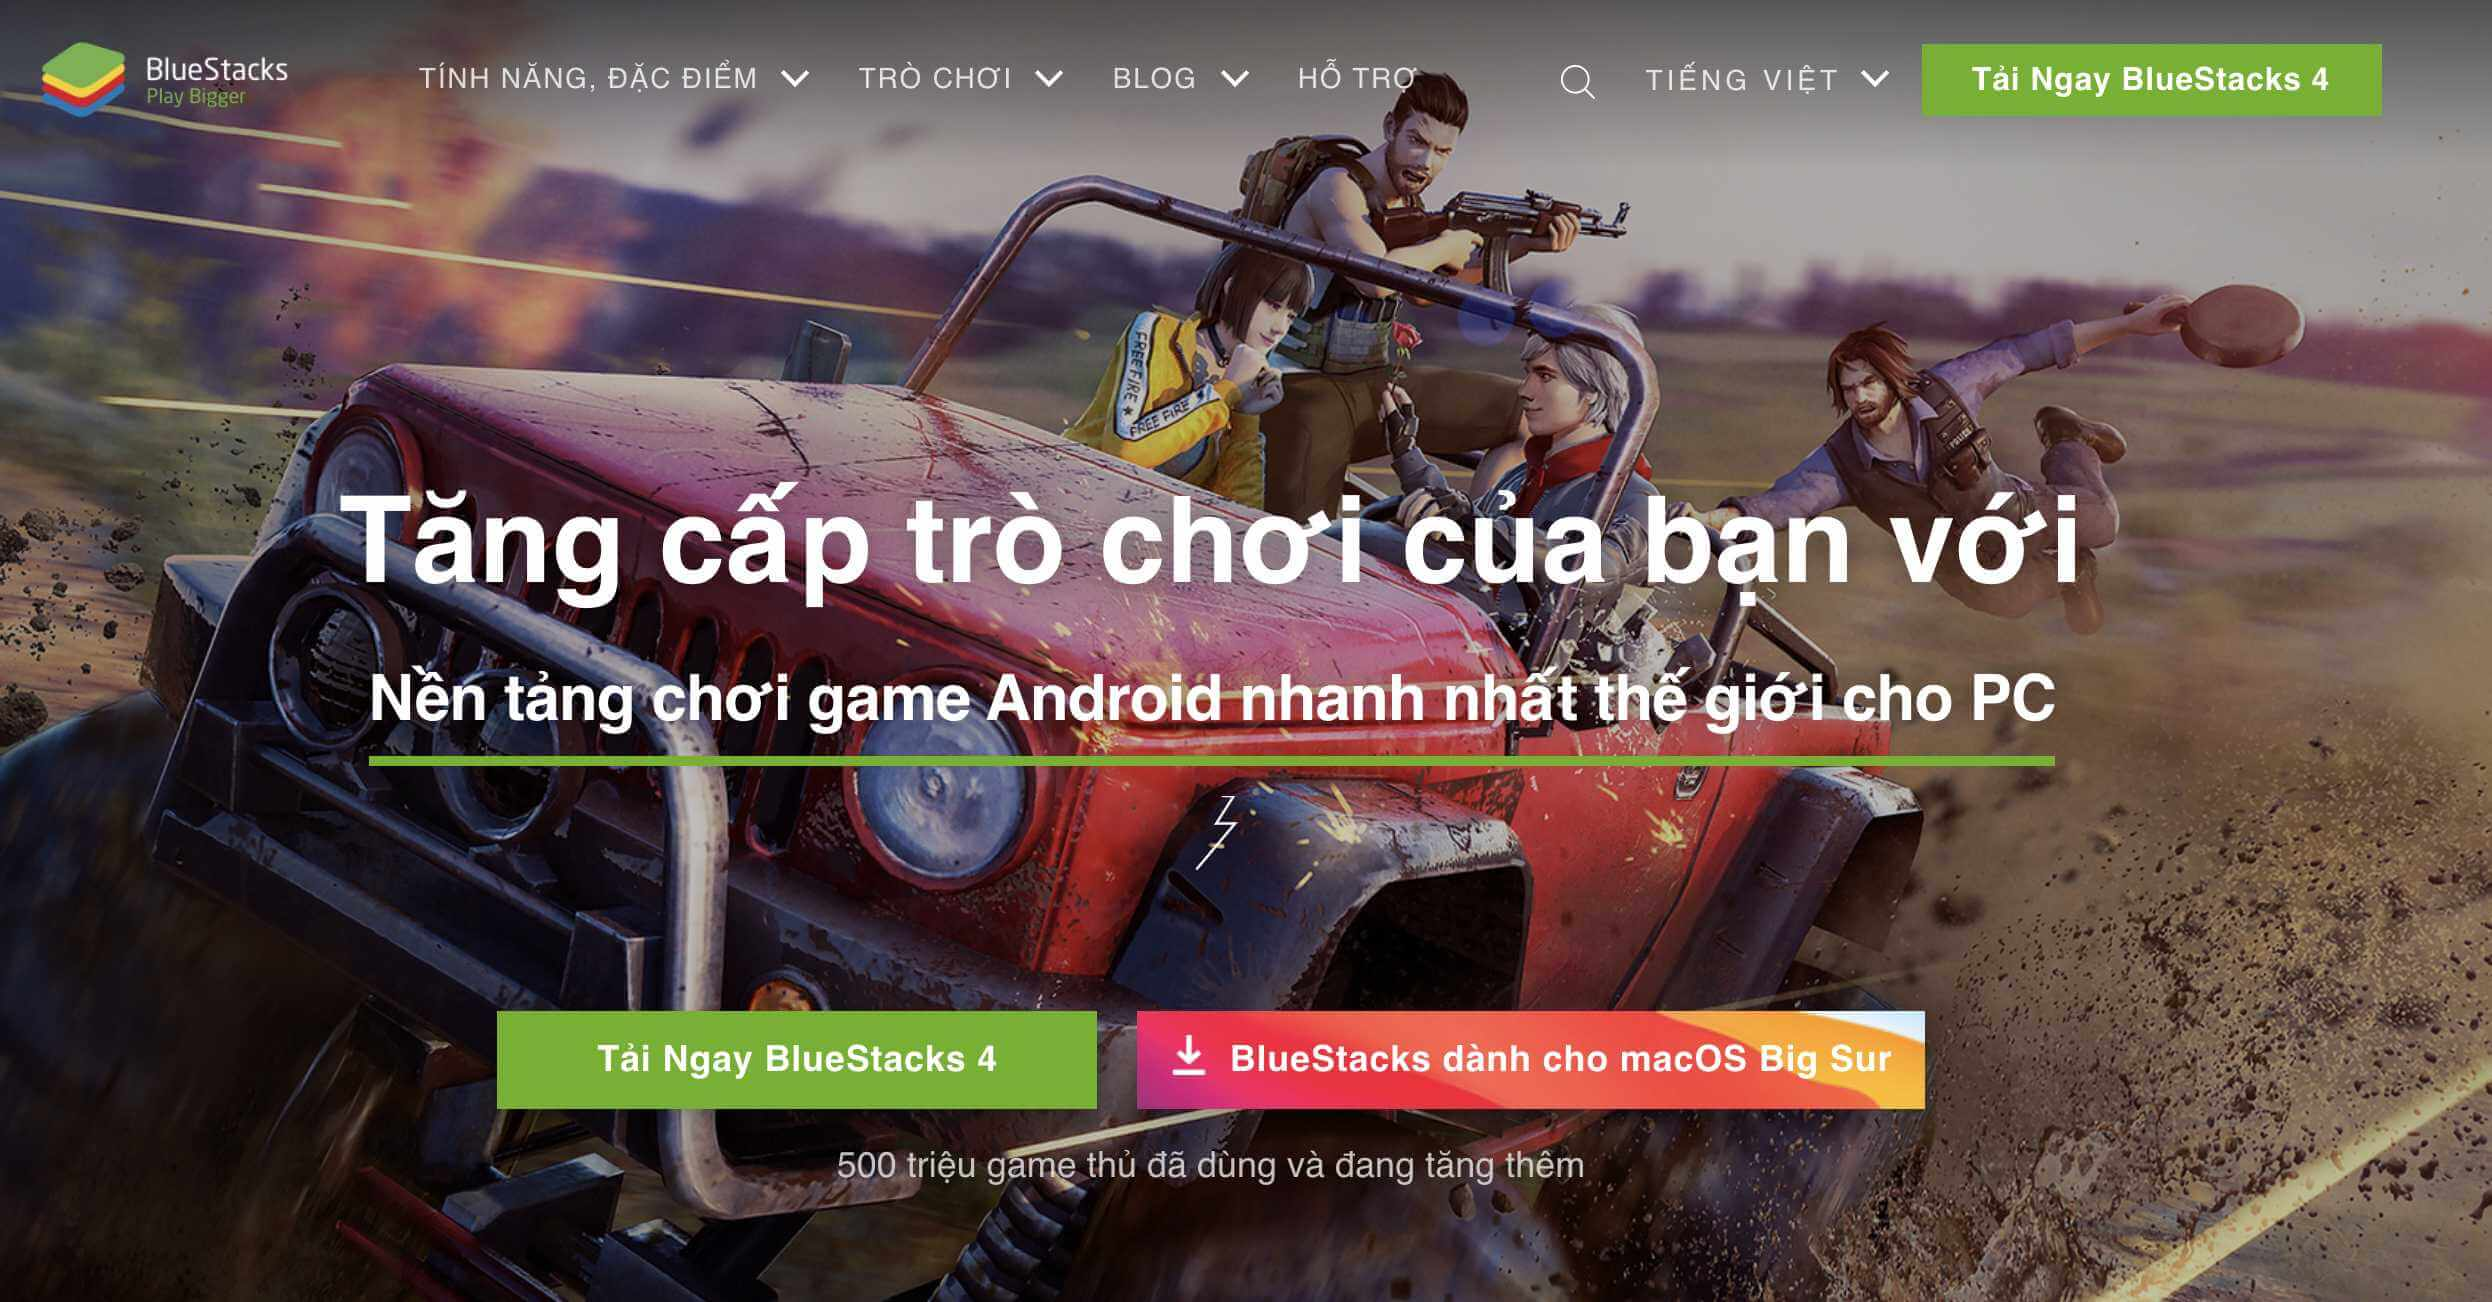 gia lap android nhe nhat